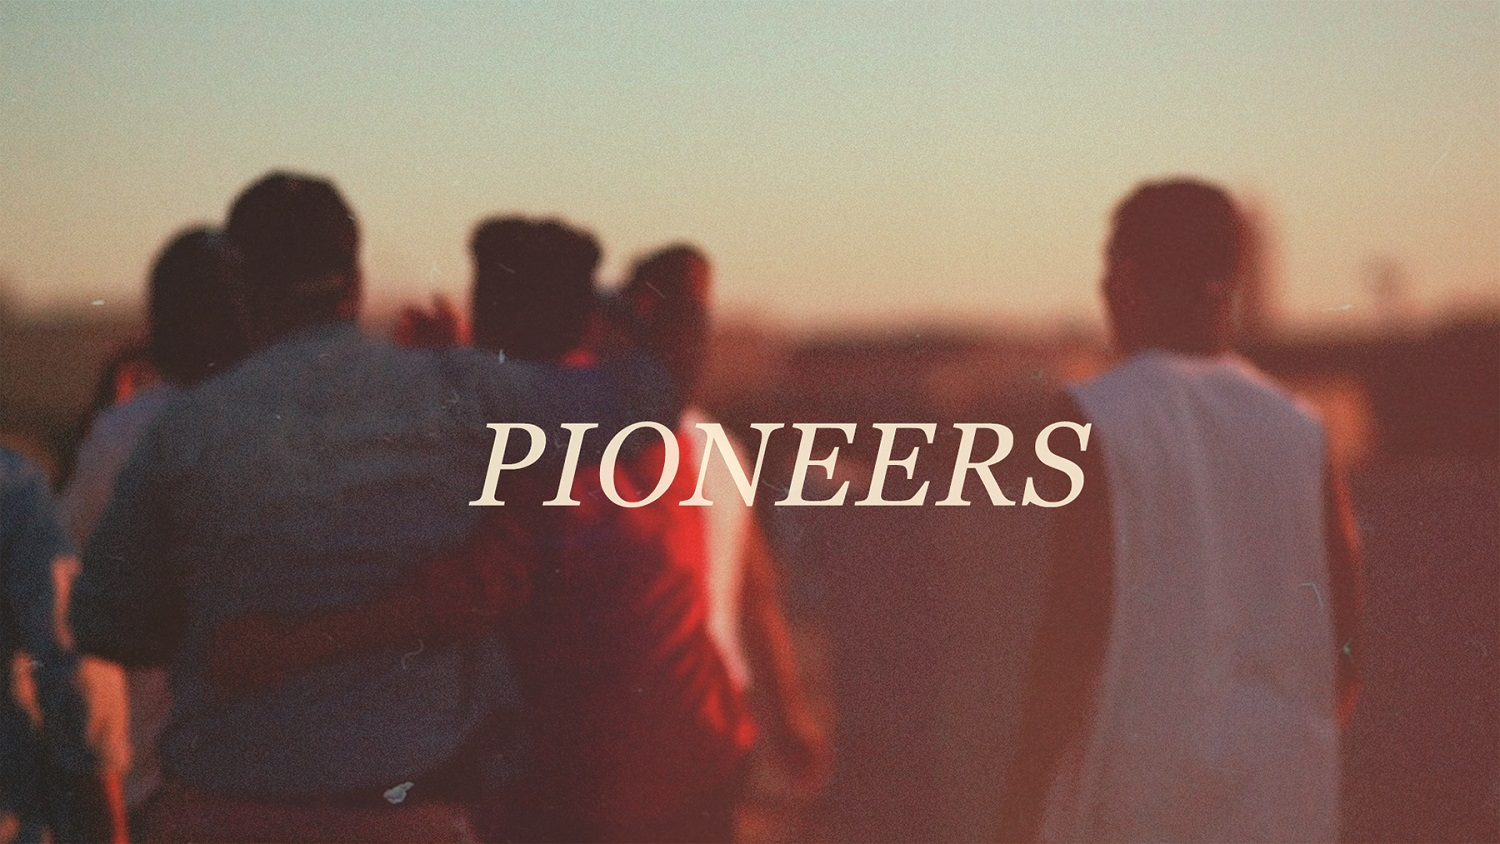 Pioneers  is a series designed to inspire students to challenge the status quo of what it means to follow Jesus in our current culture. We want students to be inspired to become trailblazers who go all-out to take the gospel to the dark places of this world.